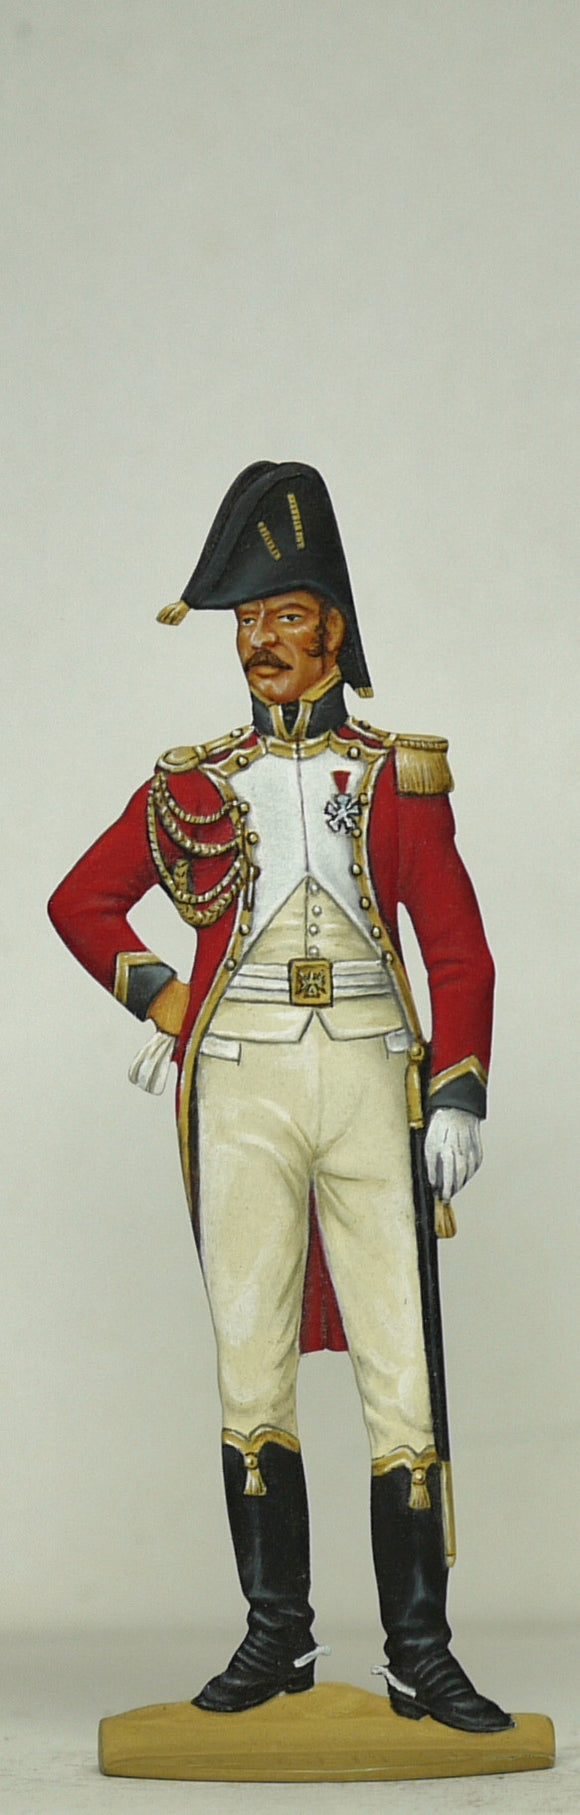 Berthiers Aide de Camp - Glorious Empires-Historical Miniatures